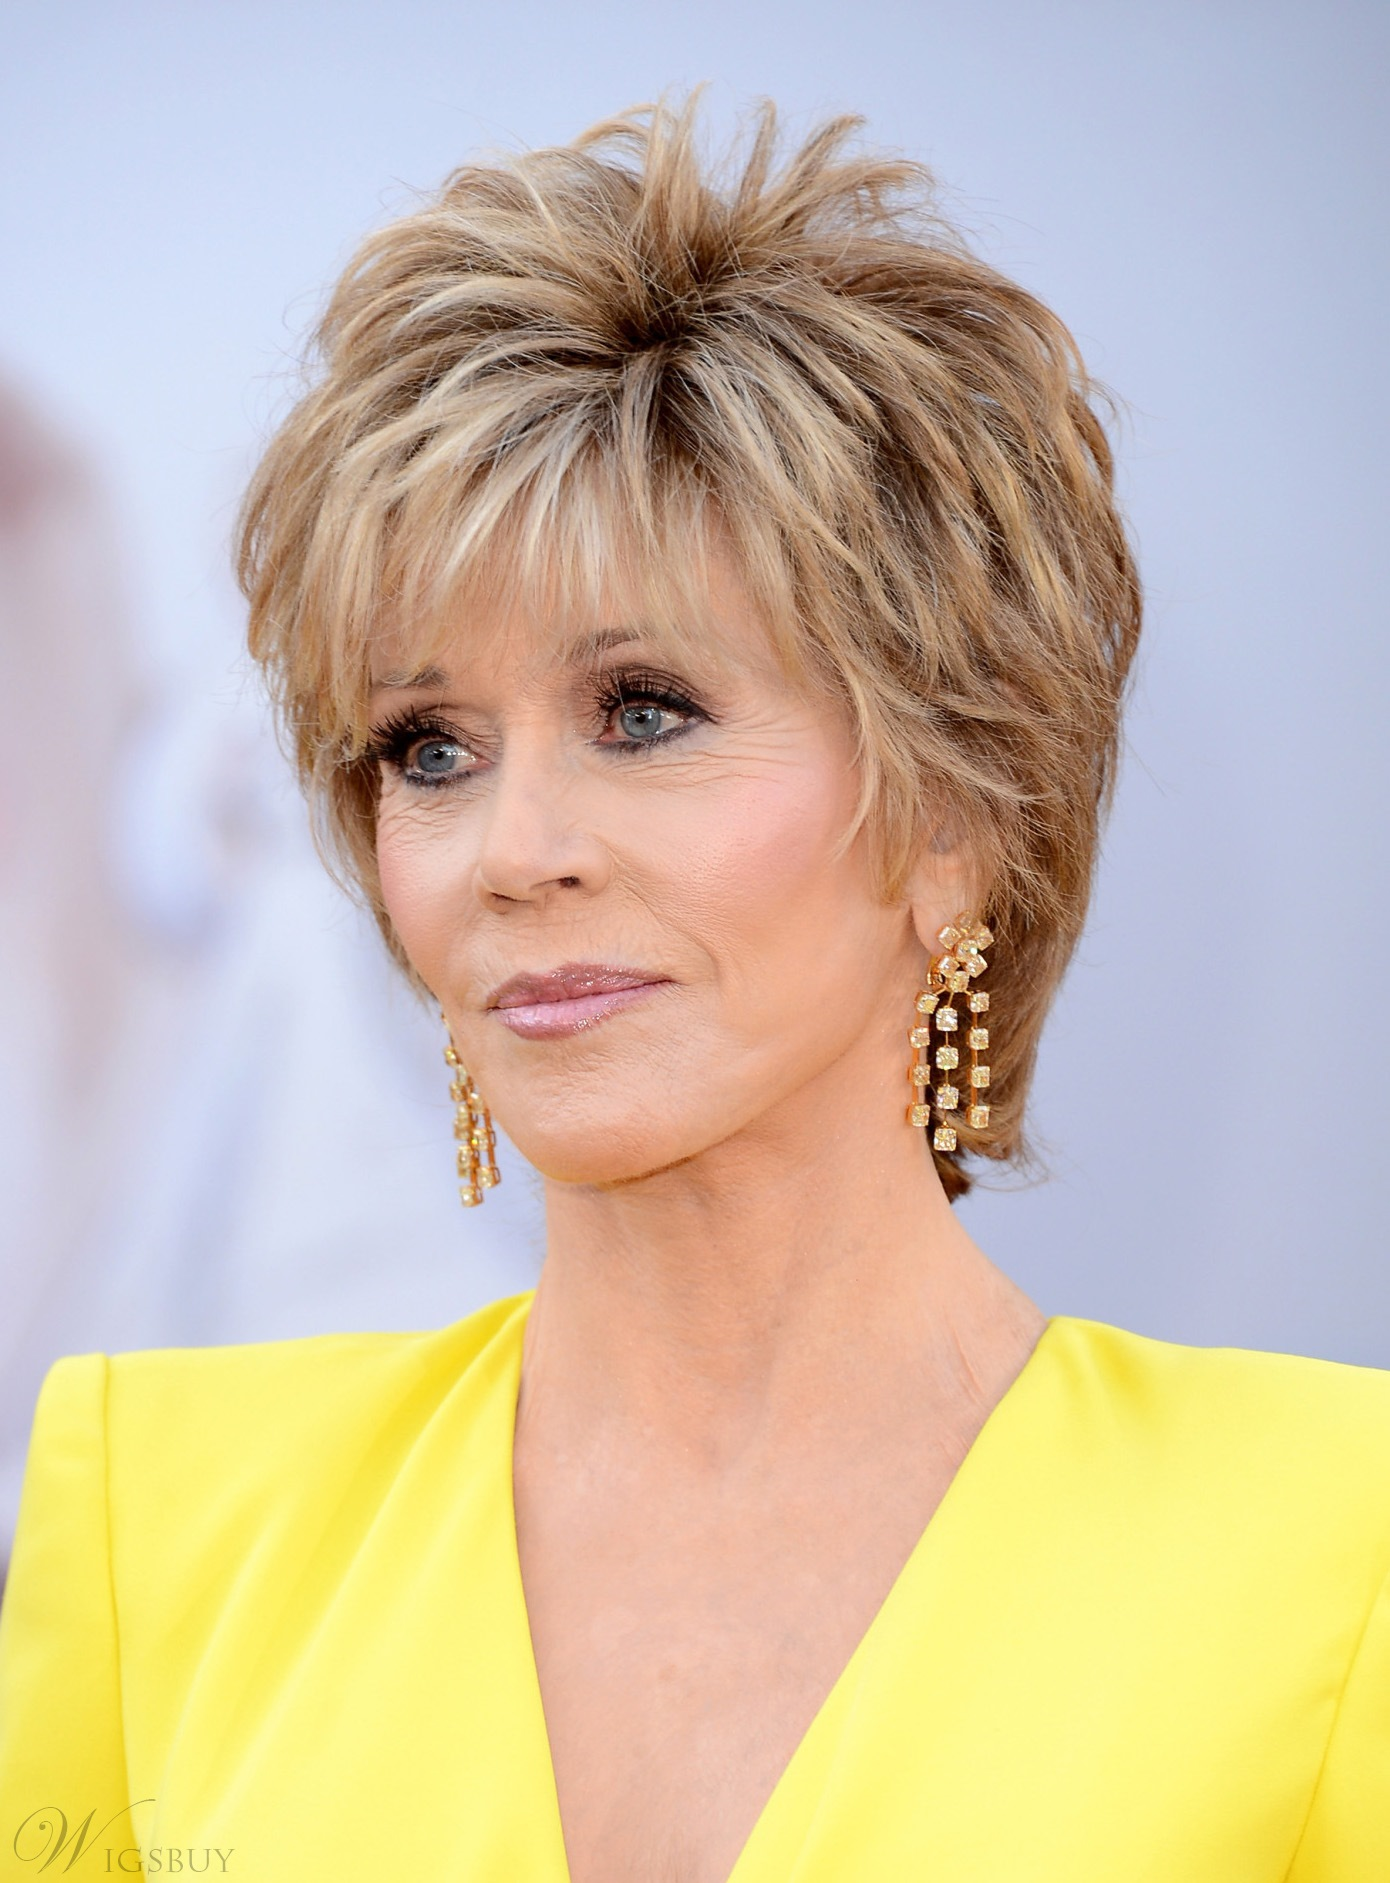 Cool Style Jane Fonda Short Straight Layered Synthetic Capless Wig 8 Inches